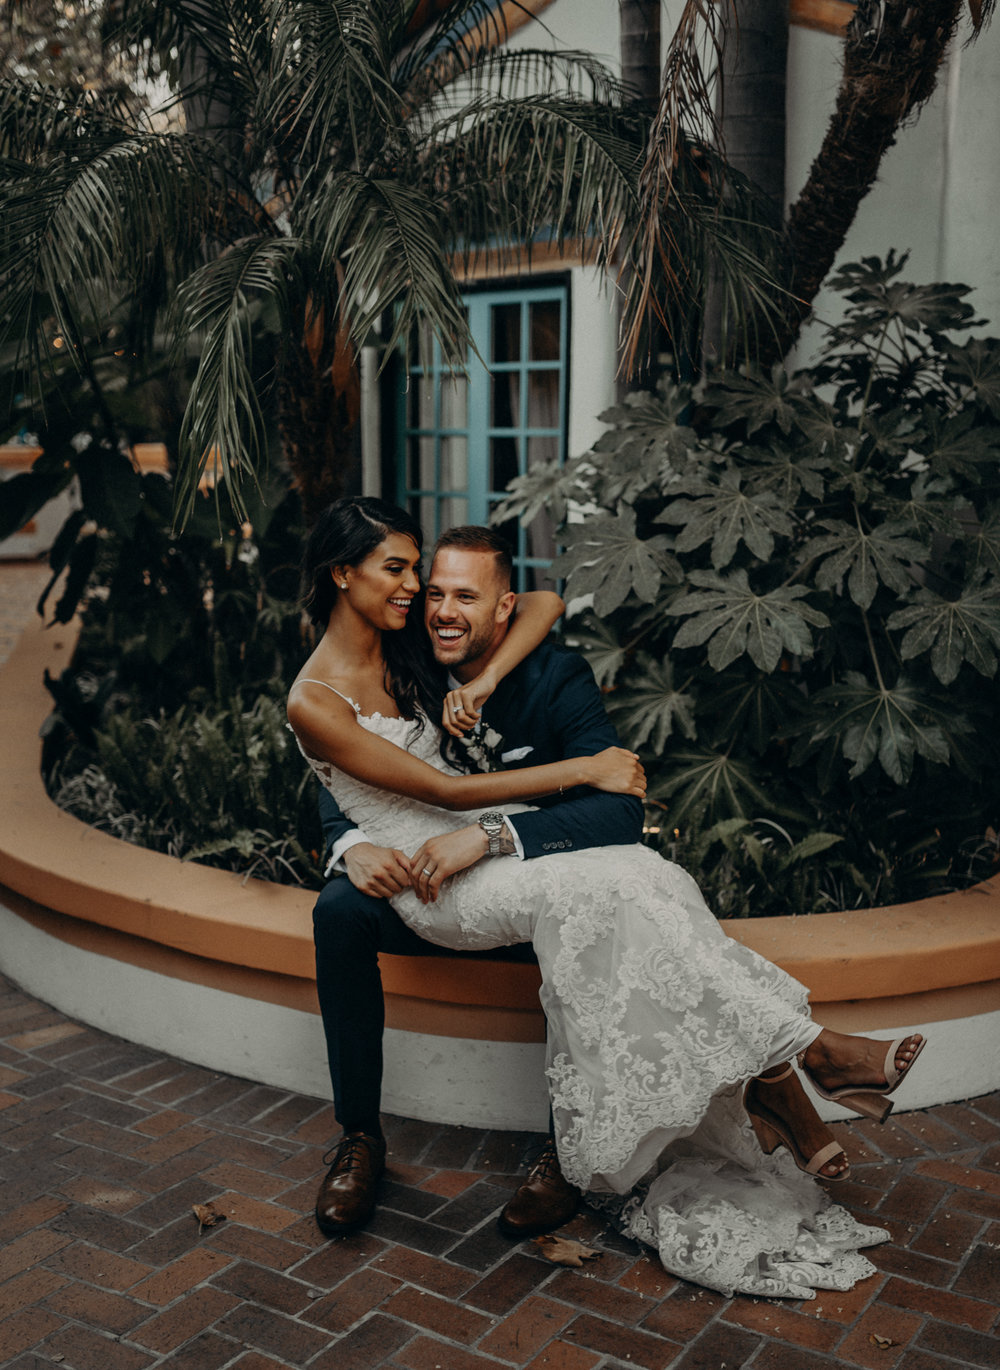 Isaiah + Taylor Photography - Rancho Las Lomas Wedding, Los Angeles Wedding Photographer-127.jpg